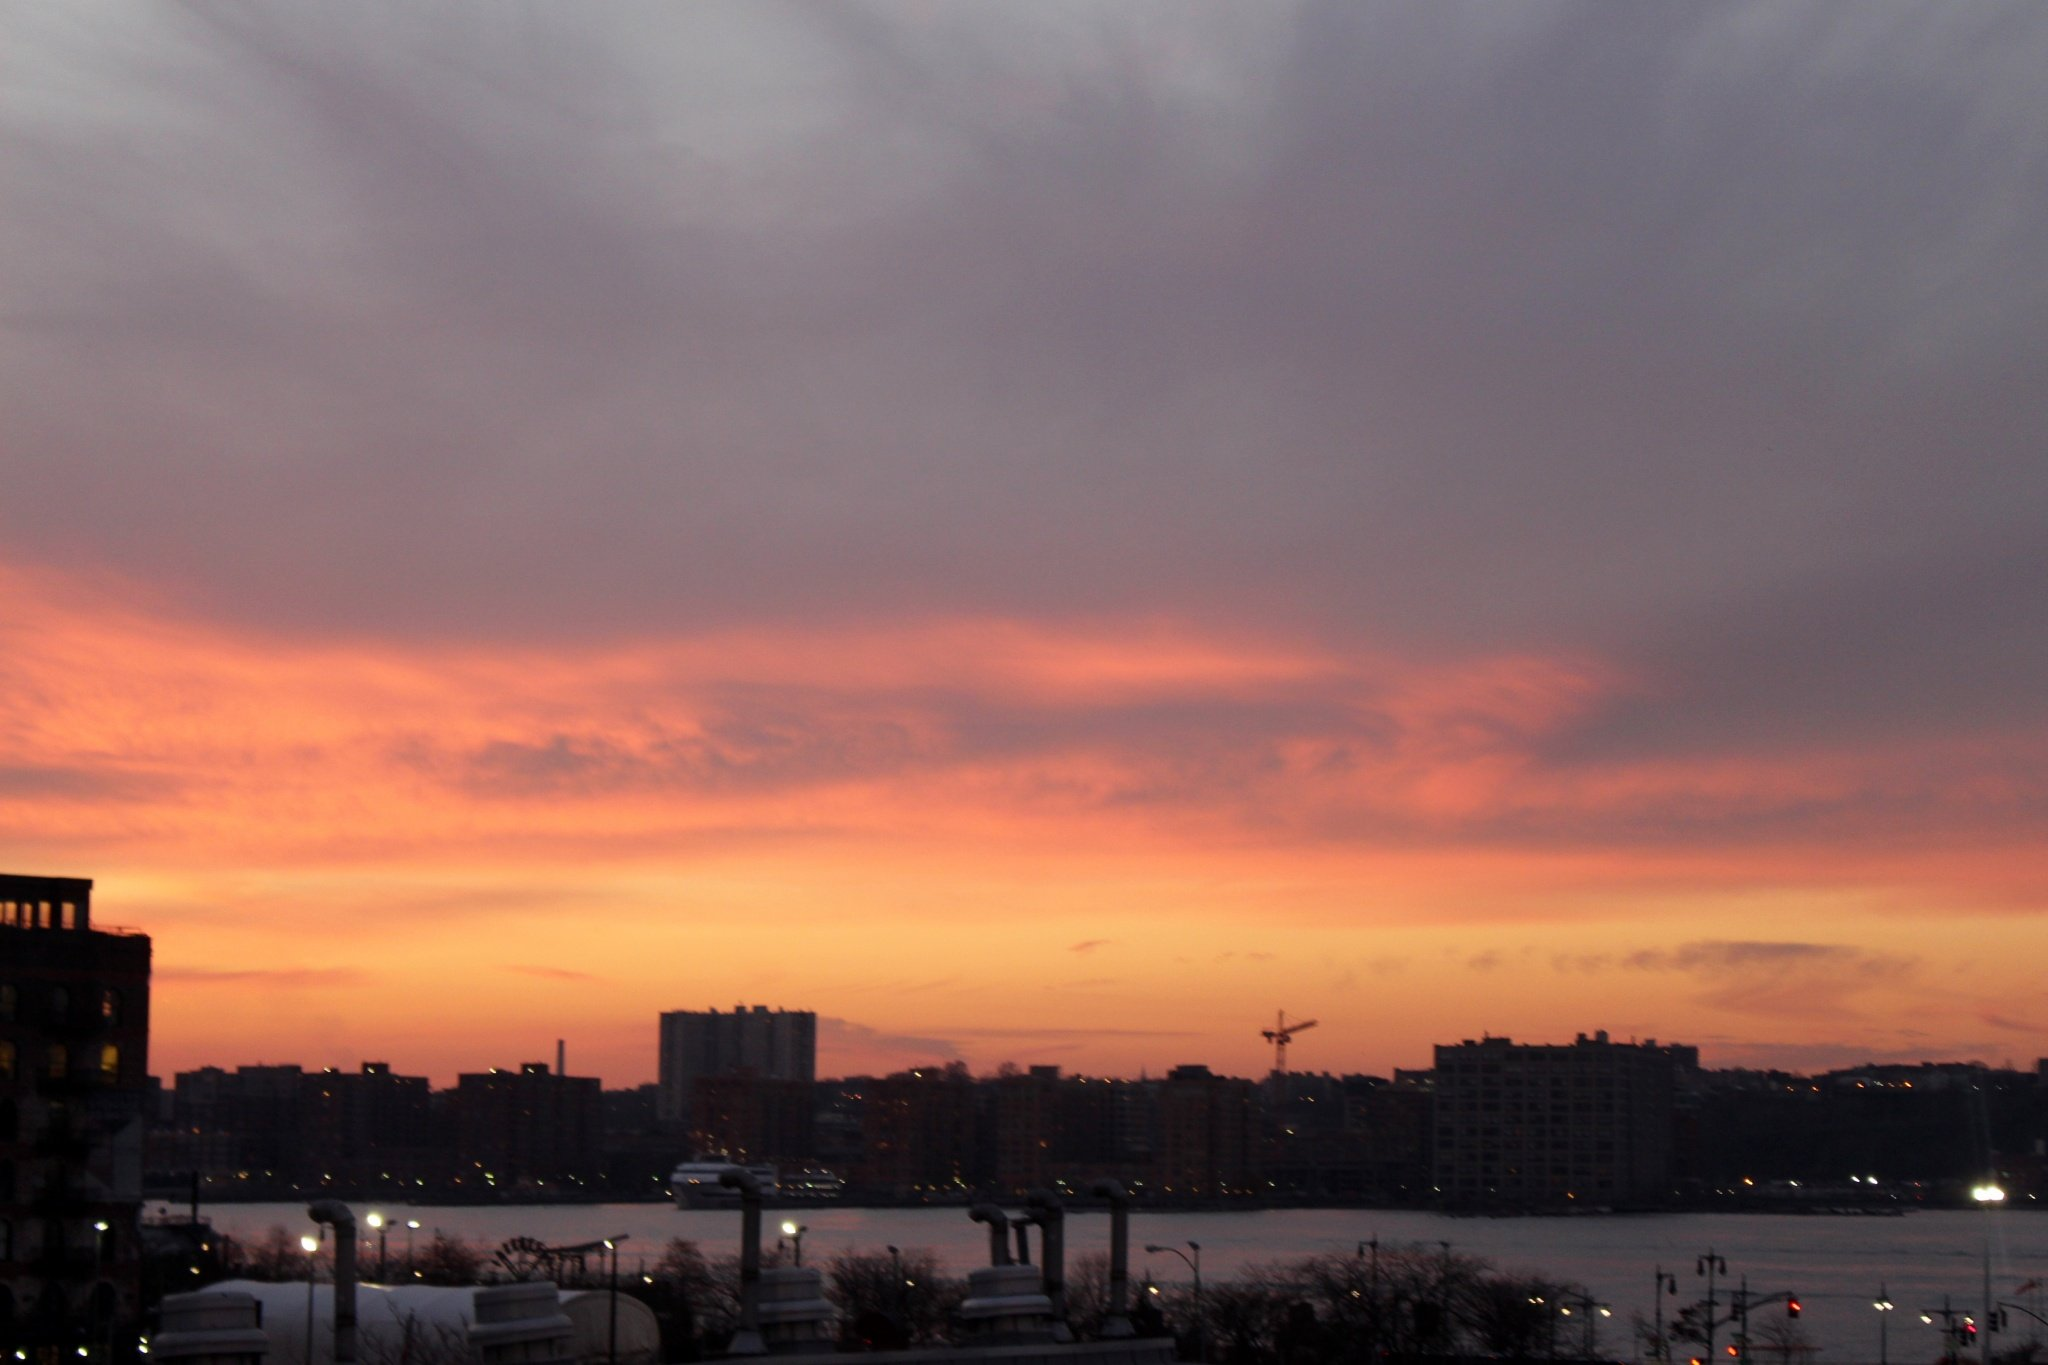 sunset from The High Line in New York